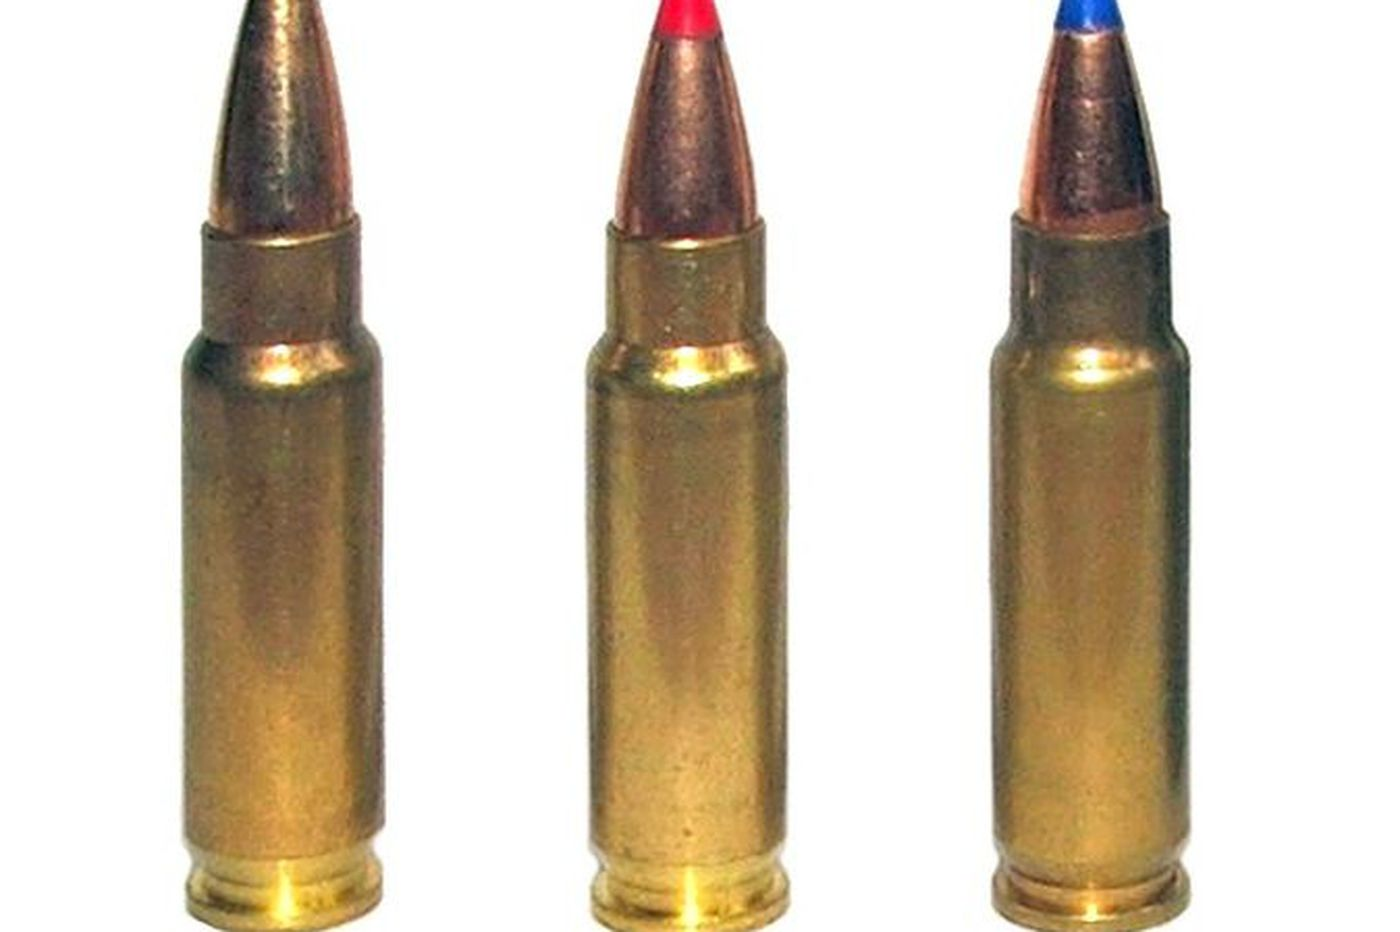 Feds mull looser regs on armor-piercing bullets as Obama calls for end to gun violence